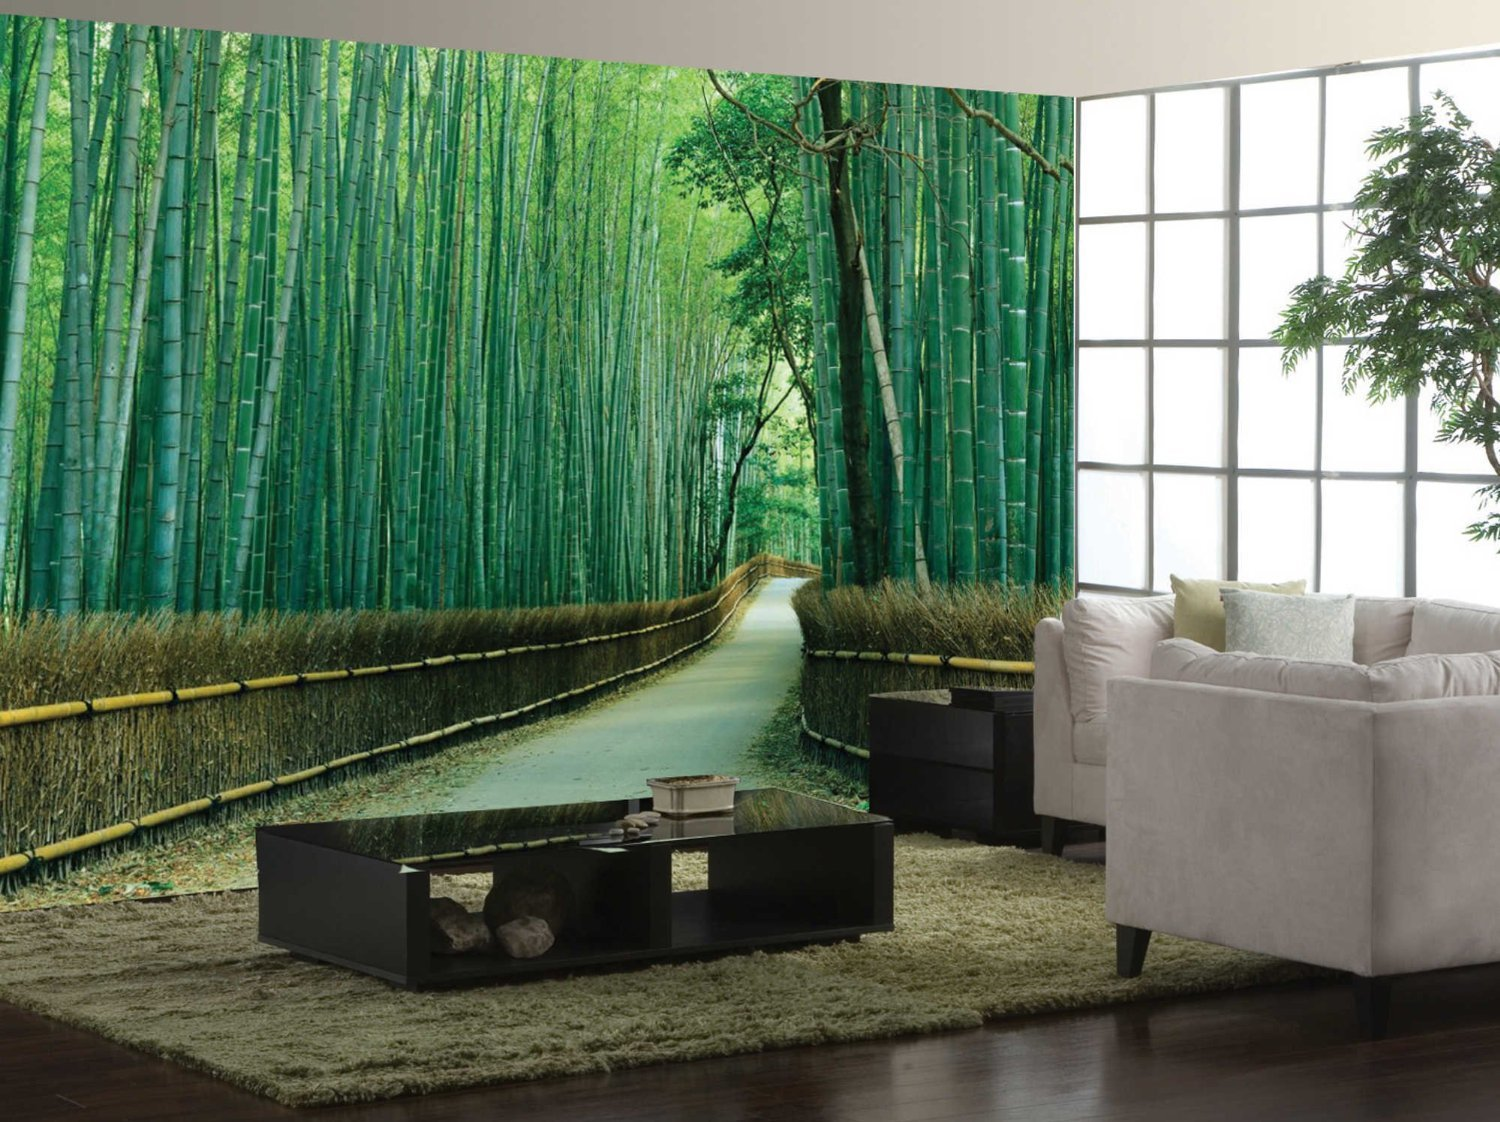 forest wallpaper for bedroom pierpointsprings com bamboo forest wall mural ideas for living room decor dinkdink forest wallpaper for room wallpapersafari